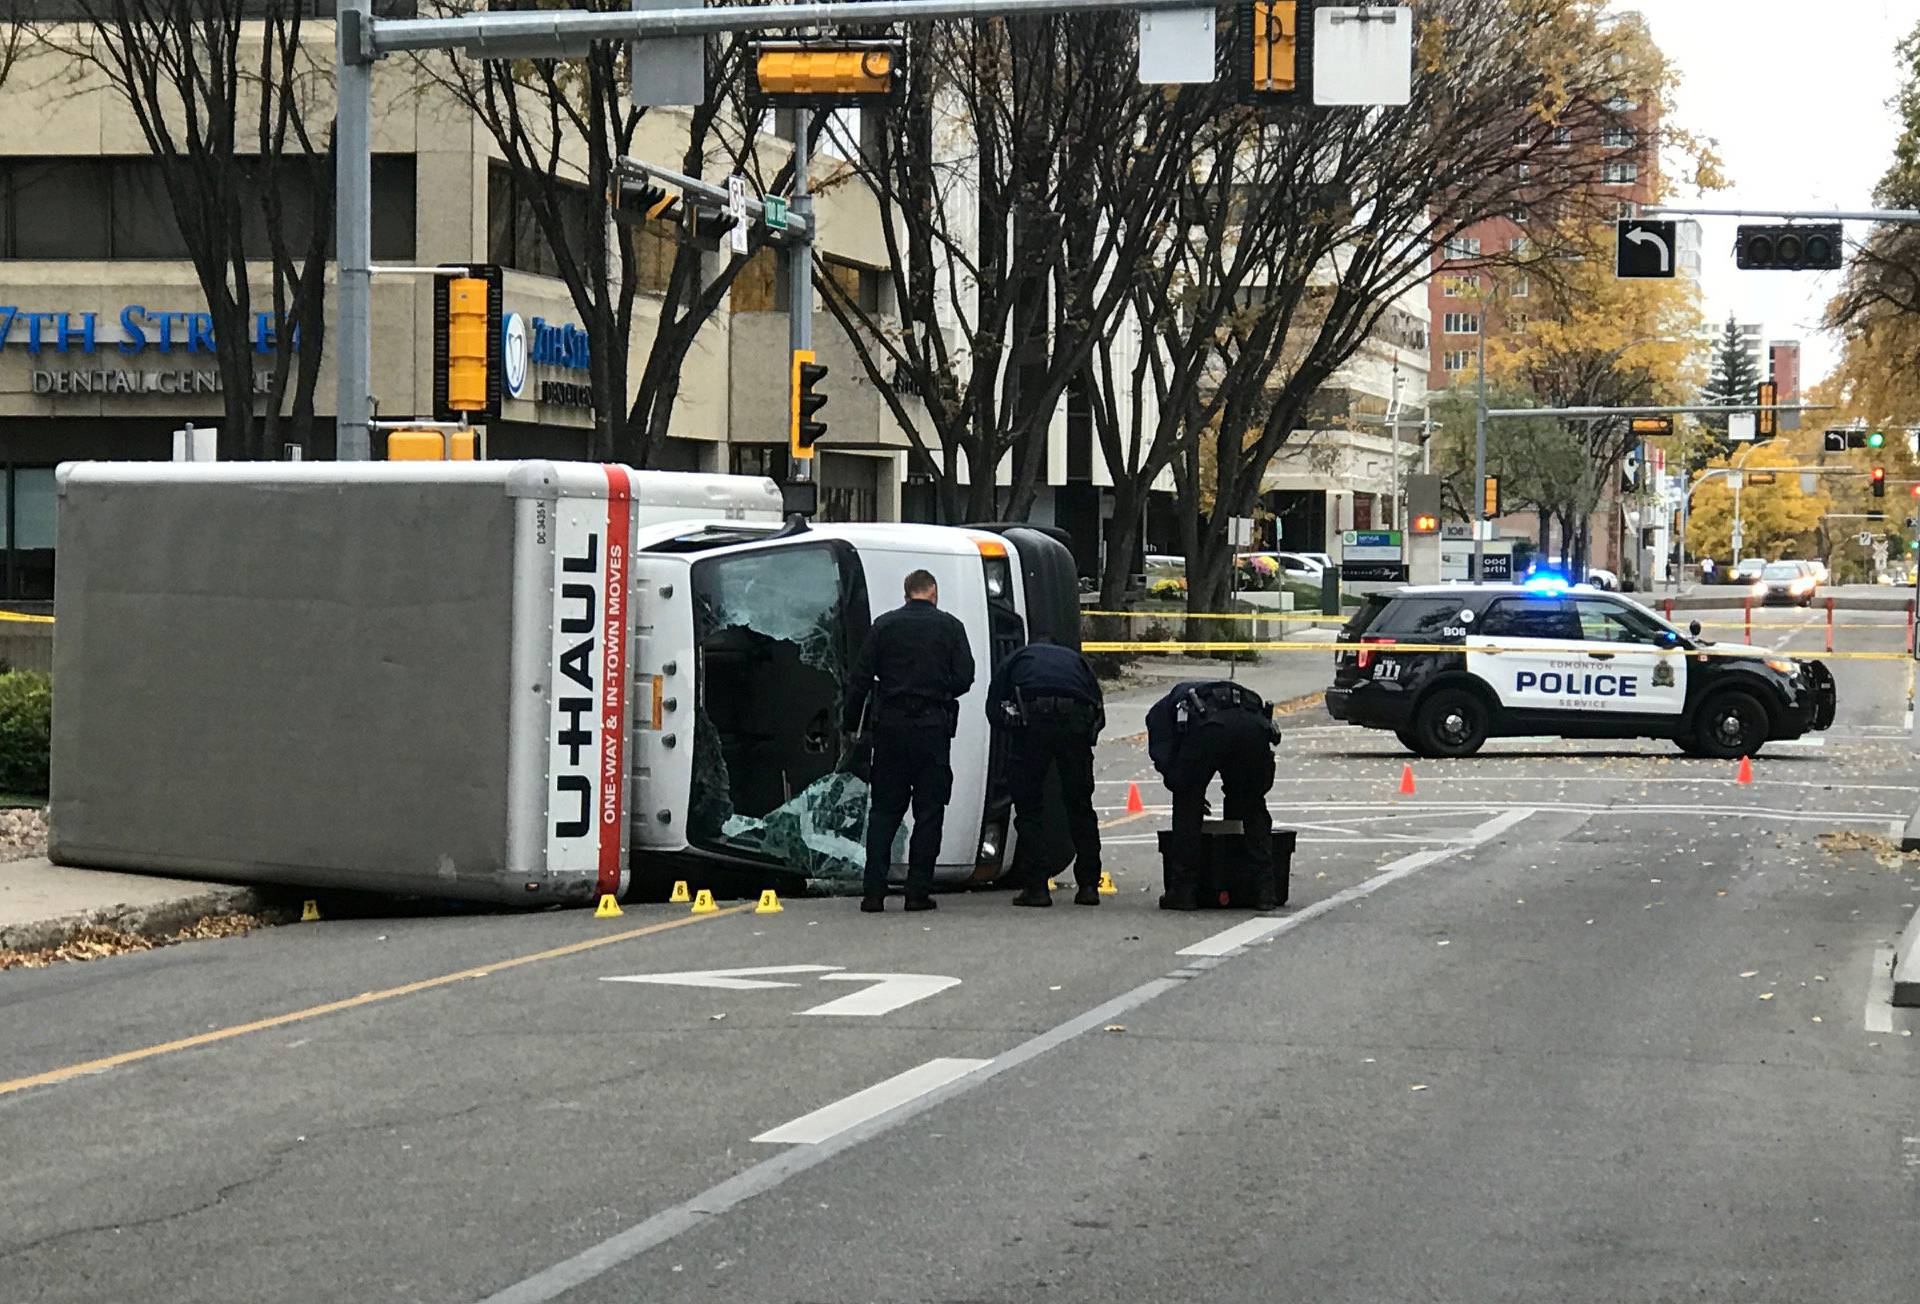 Edmonton Police investigate at the scene where a man hit pedestrians then flipped the U-Haul truck in Edmonton